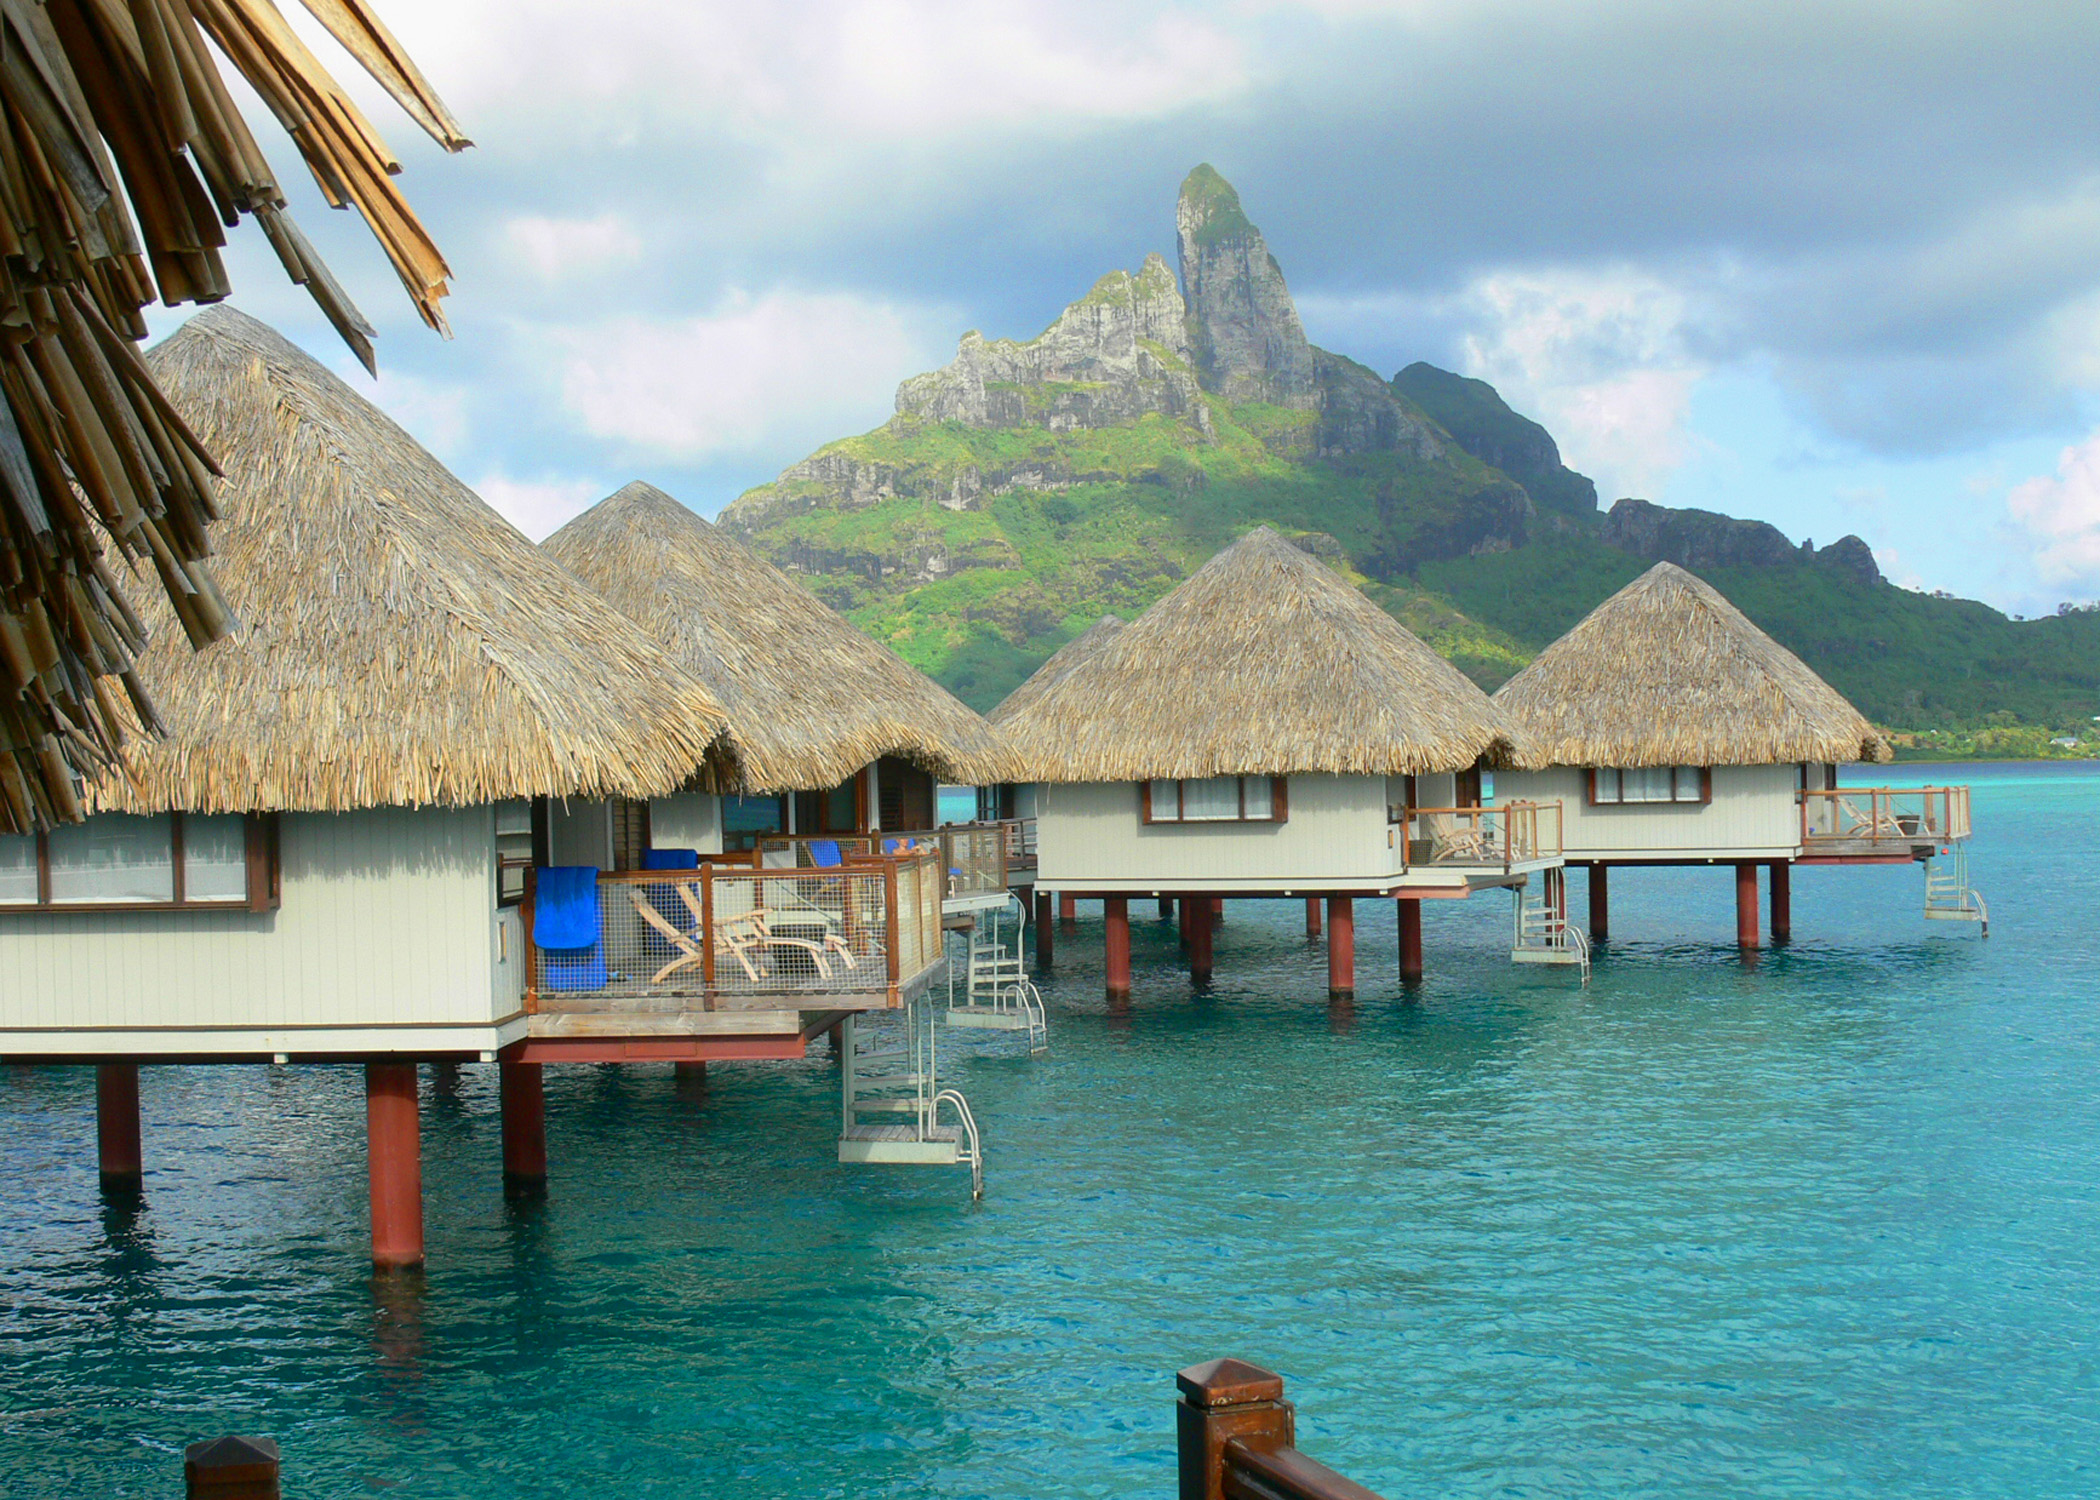 French Polynesia Tahiti Moorea And Bora Bora With Kids - The 9 best family friendly resorts in hawaii